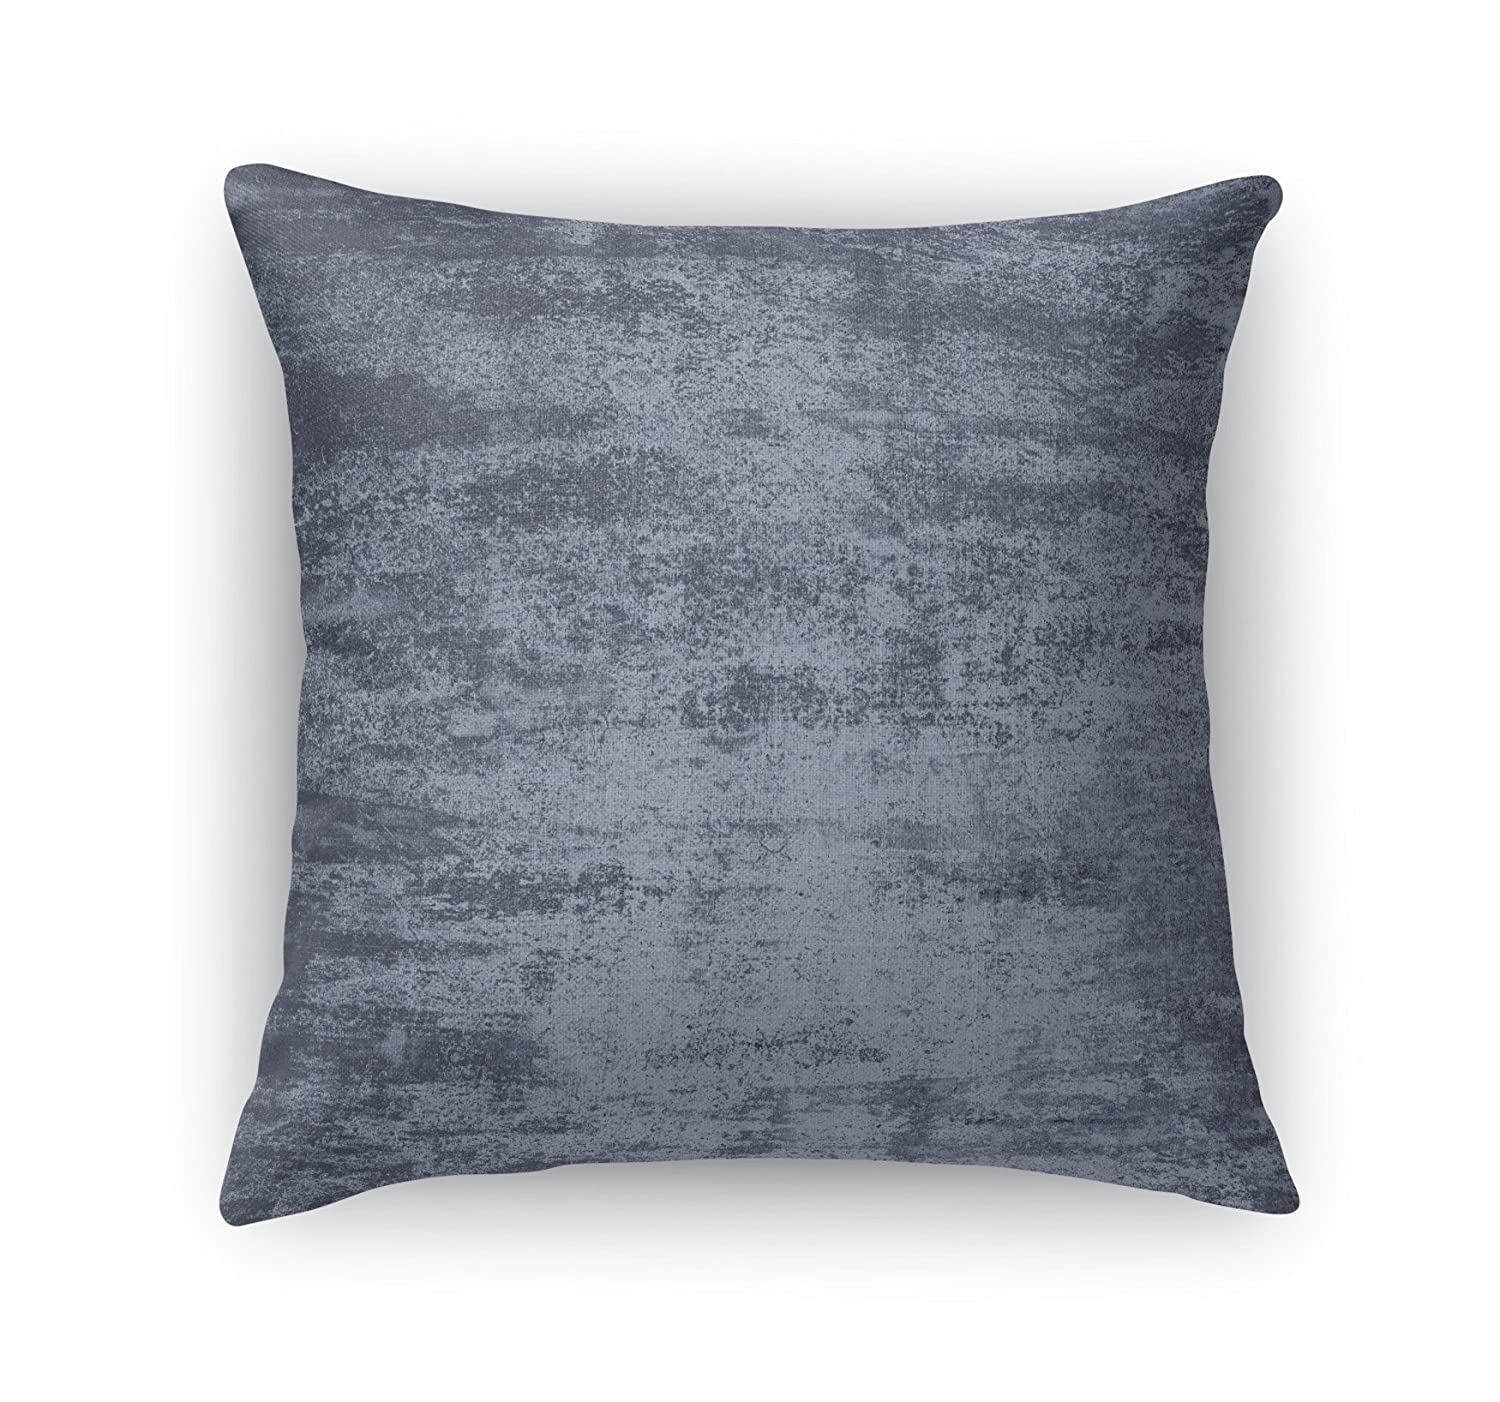 Size: 24X24X6 - TELAVC1497DI24 Blue KAVKA Designs Gela Accent Pillow, - Encompass Collection